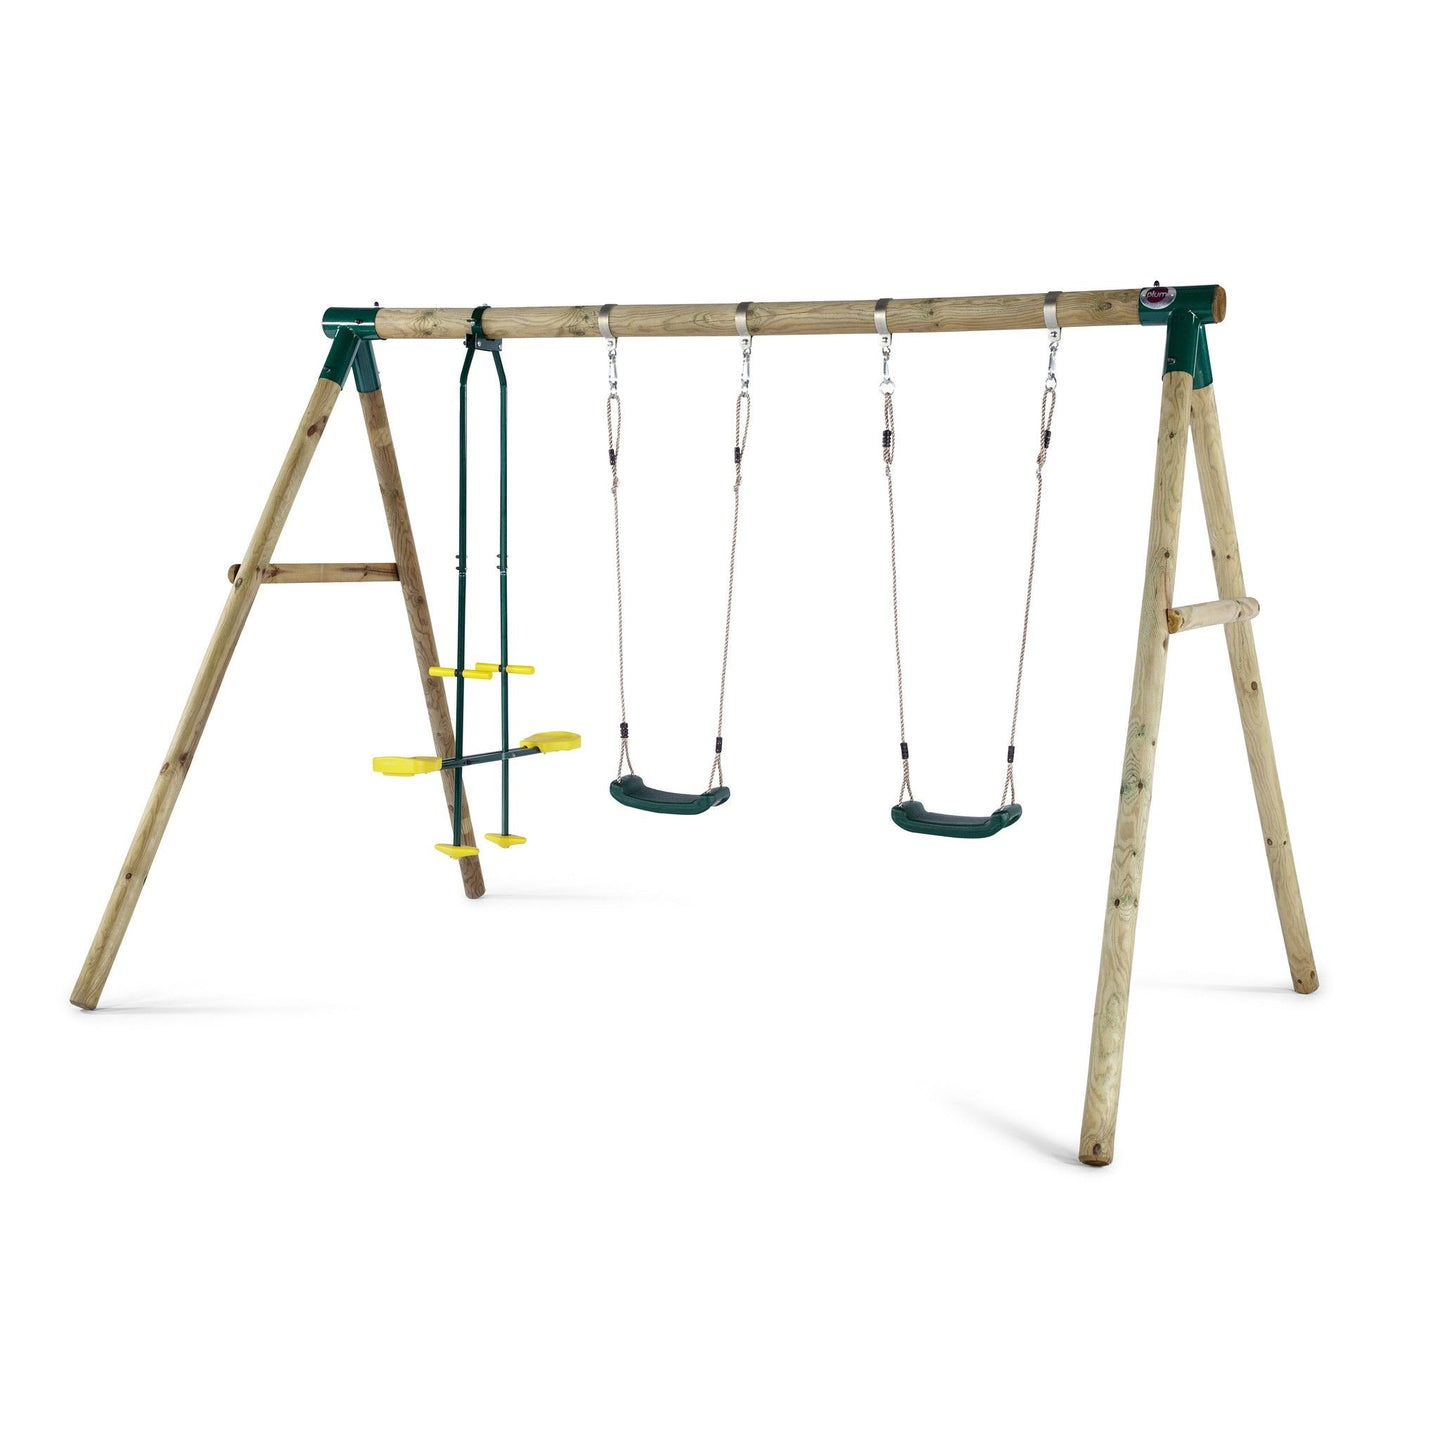 Plum Colobus Wooden Swing Set with Glider - Backyard Fun and Play!